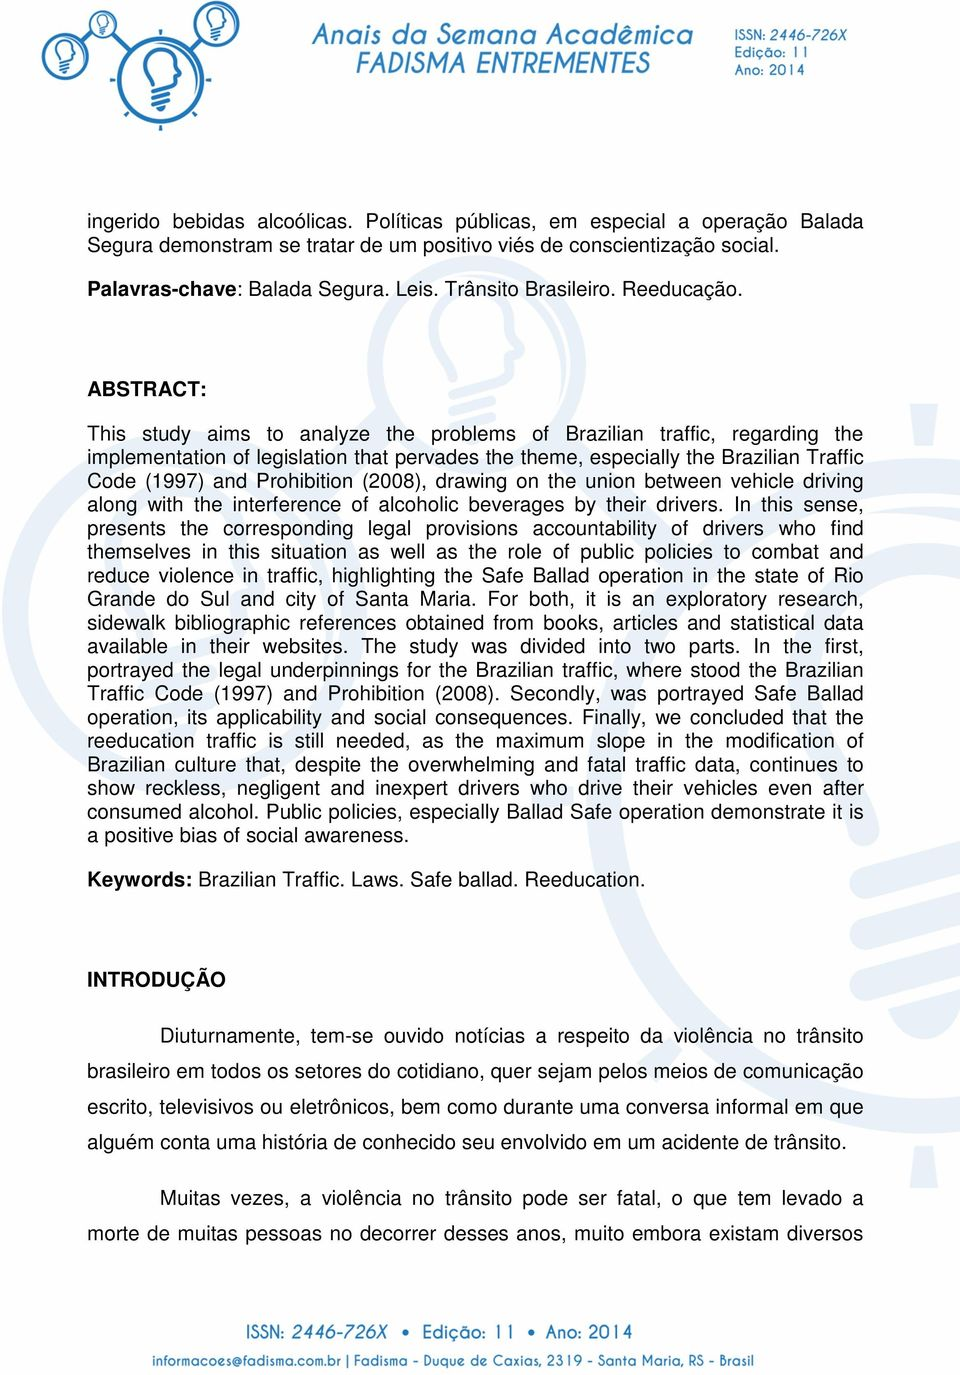 ABSTRACT: This study aims to analyze the problems of Brazilian traffic, regarding the implementation of legislation that pervades the theme, especially the Brazilian Traffic Code (1997) and